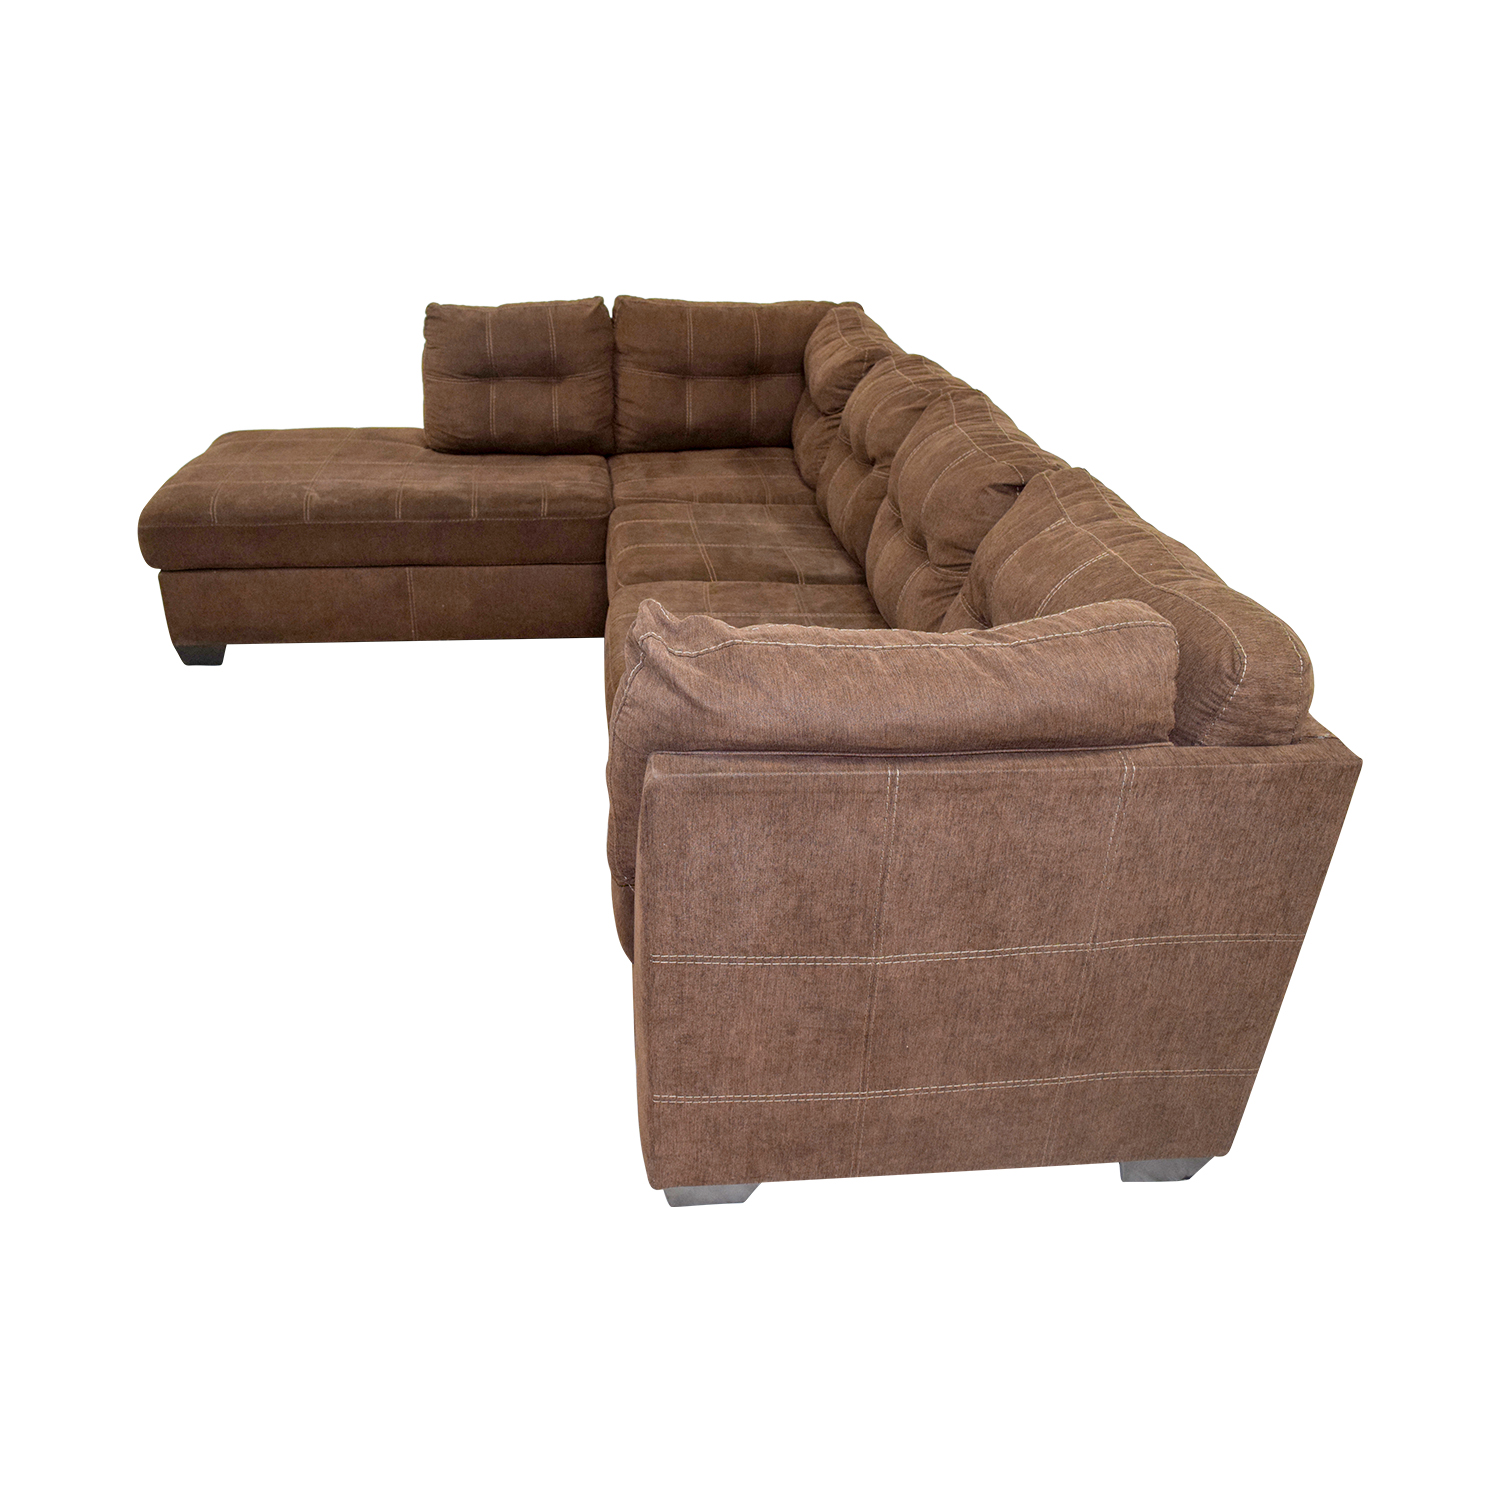 64 Off Brown L Shaped Chaise Sectional Sofa Sofas